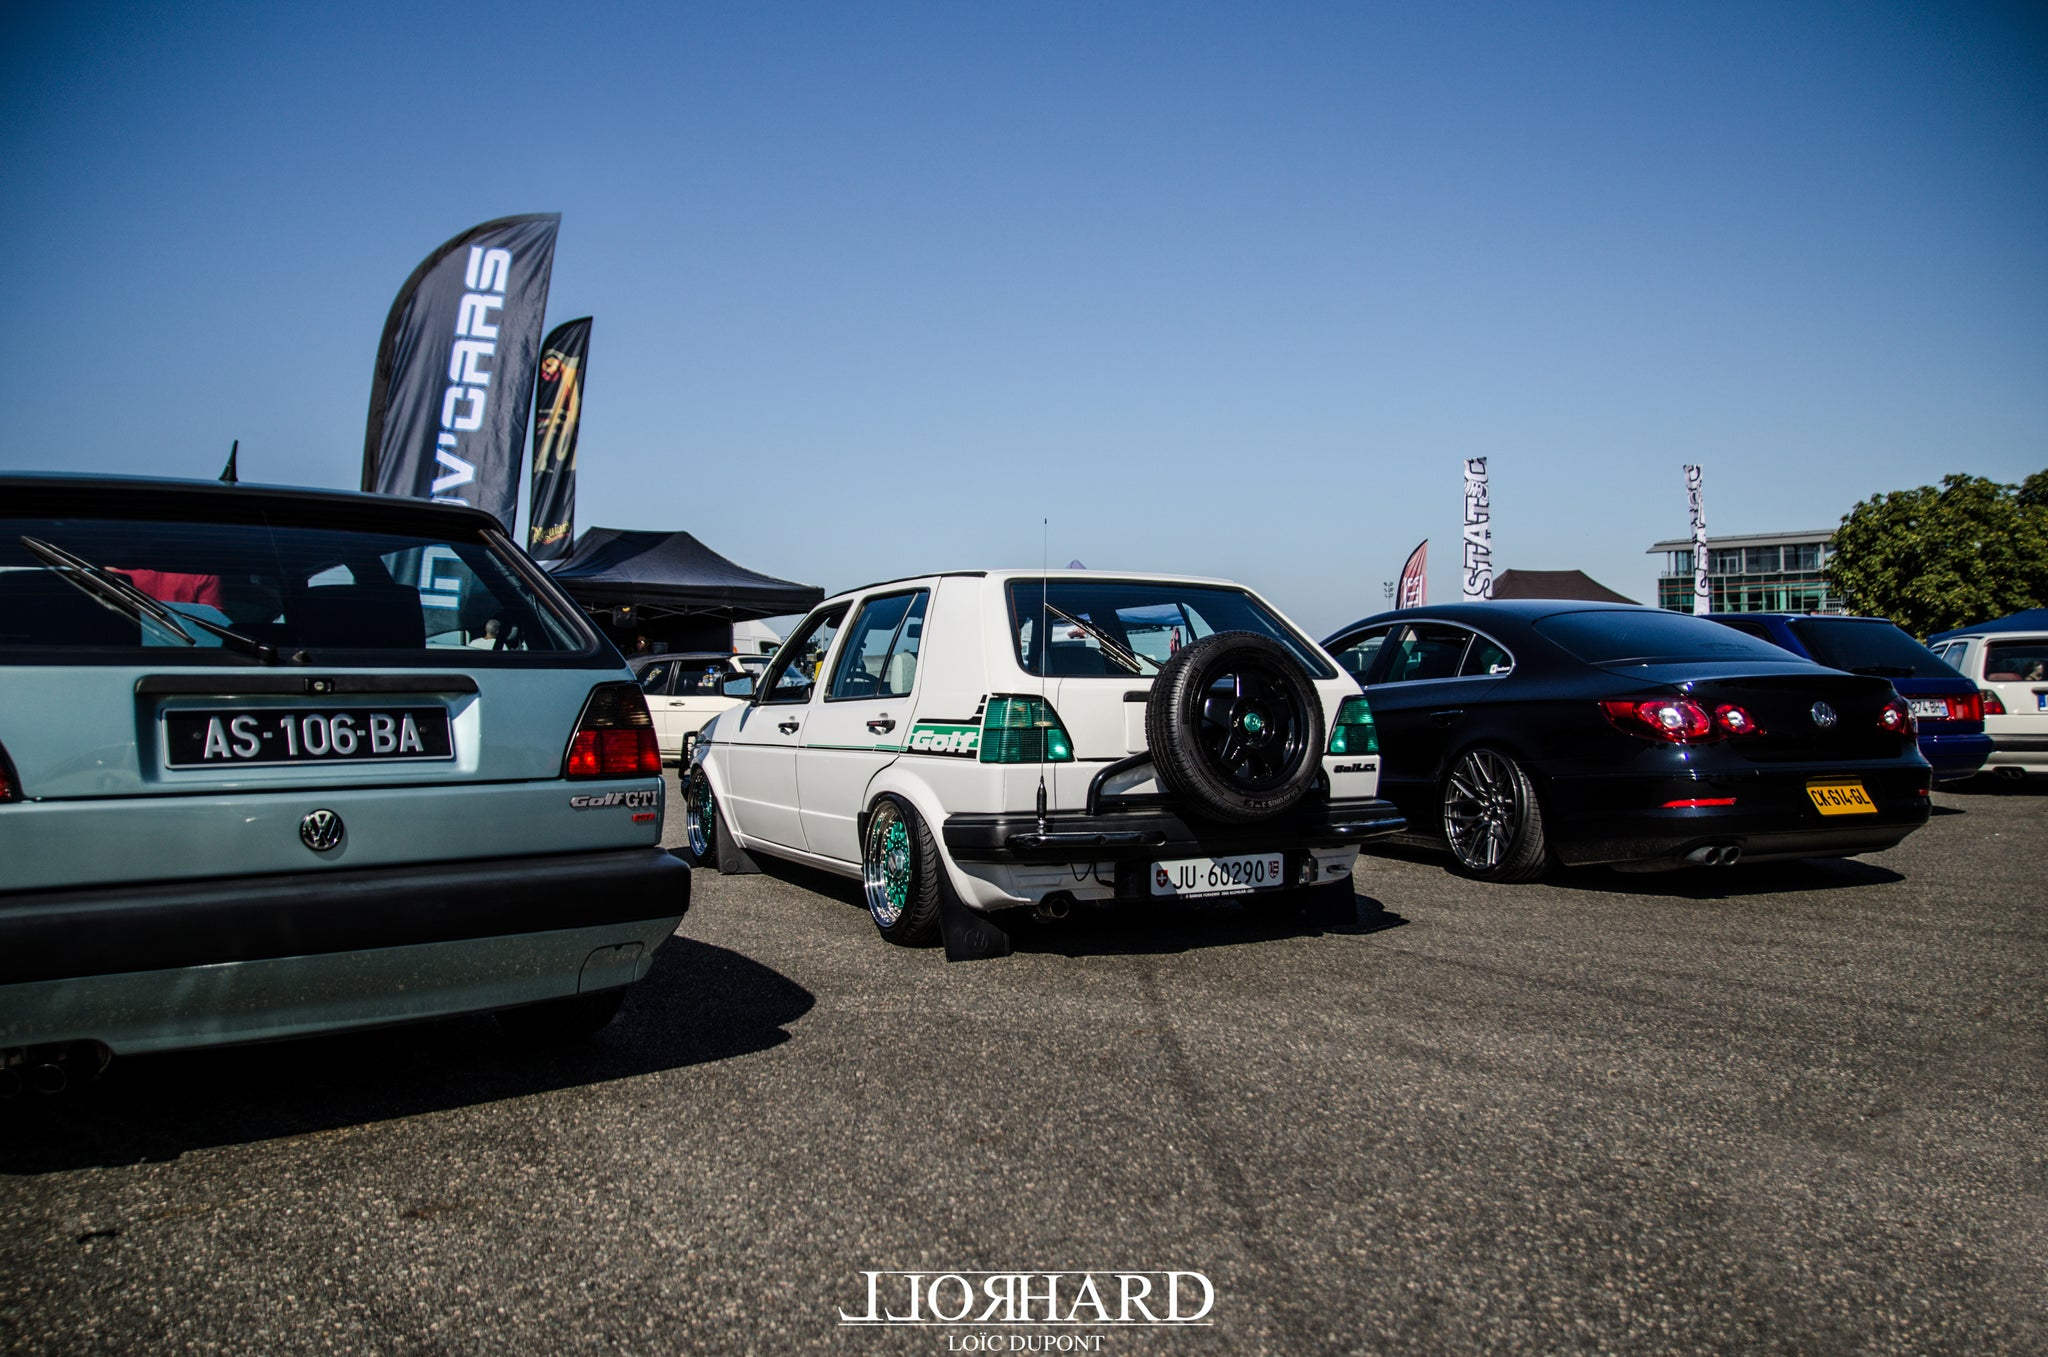 RollHard Show Coverage, Tokan Photography, VW School event, Magny Cours, France, French car scene, volkswagens, custom, modified cars, low cars, VWs, dubs, bbs, rotiform, airlift, stance, fitment, french modified cars